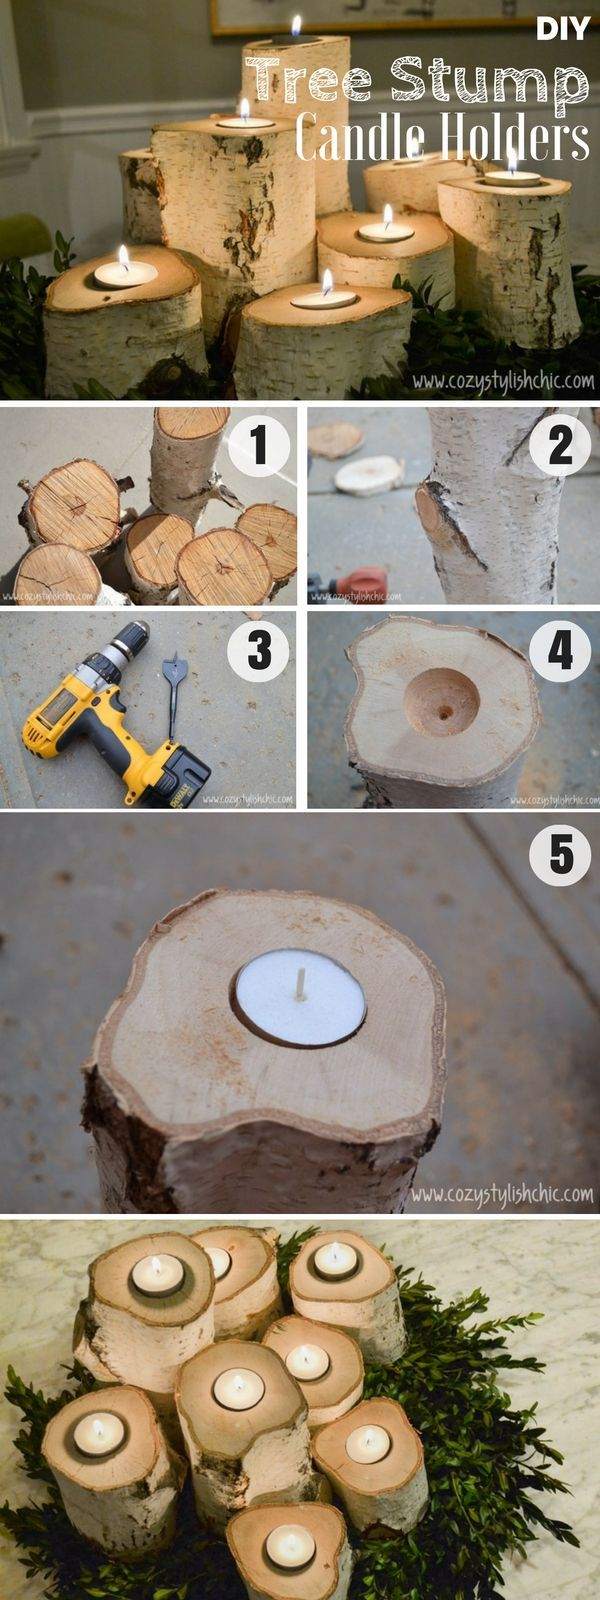 Candle Home Decor Decor best 25+ candle holder decor ideas on pinterest | dollar tree